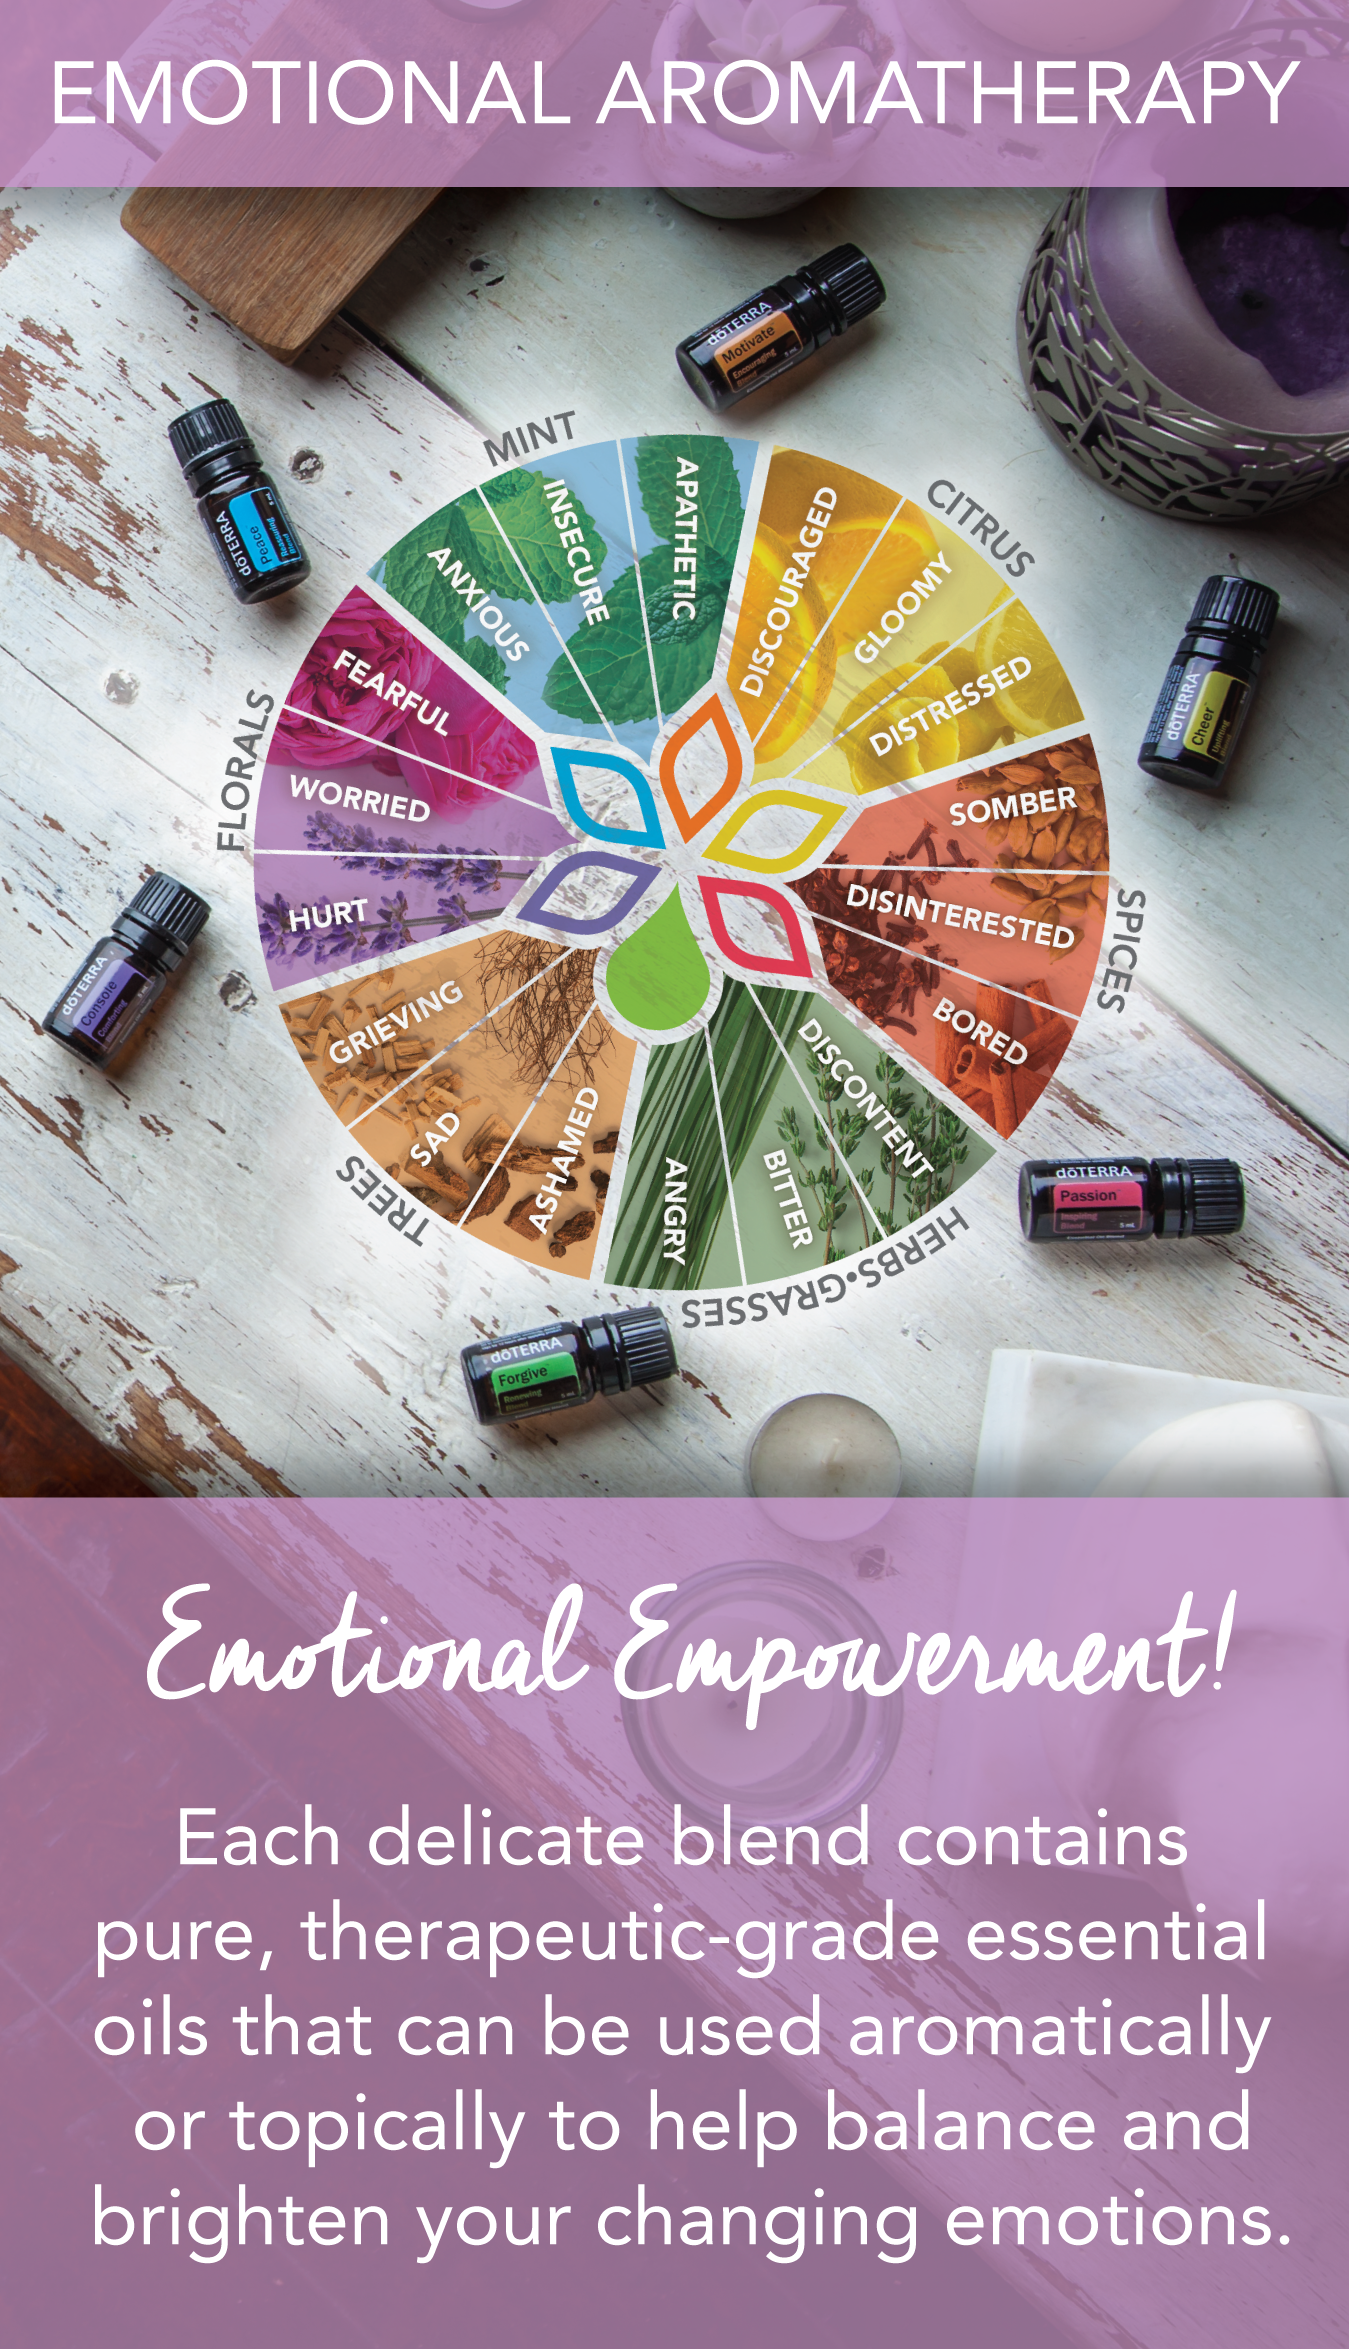 Join me online for a Free Facebook Class on Emotional AromaTherapy:  https://www.facebook.com/groups/EOsandEmotions/